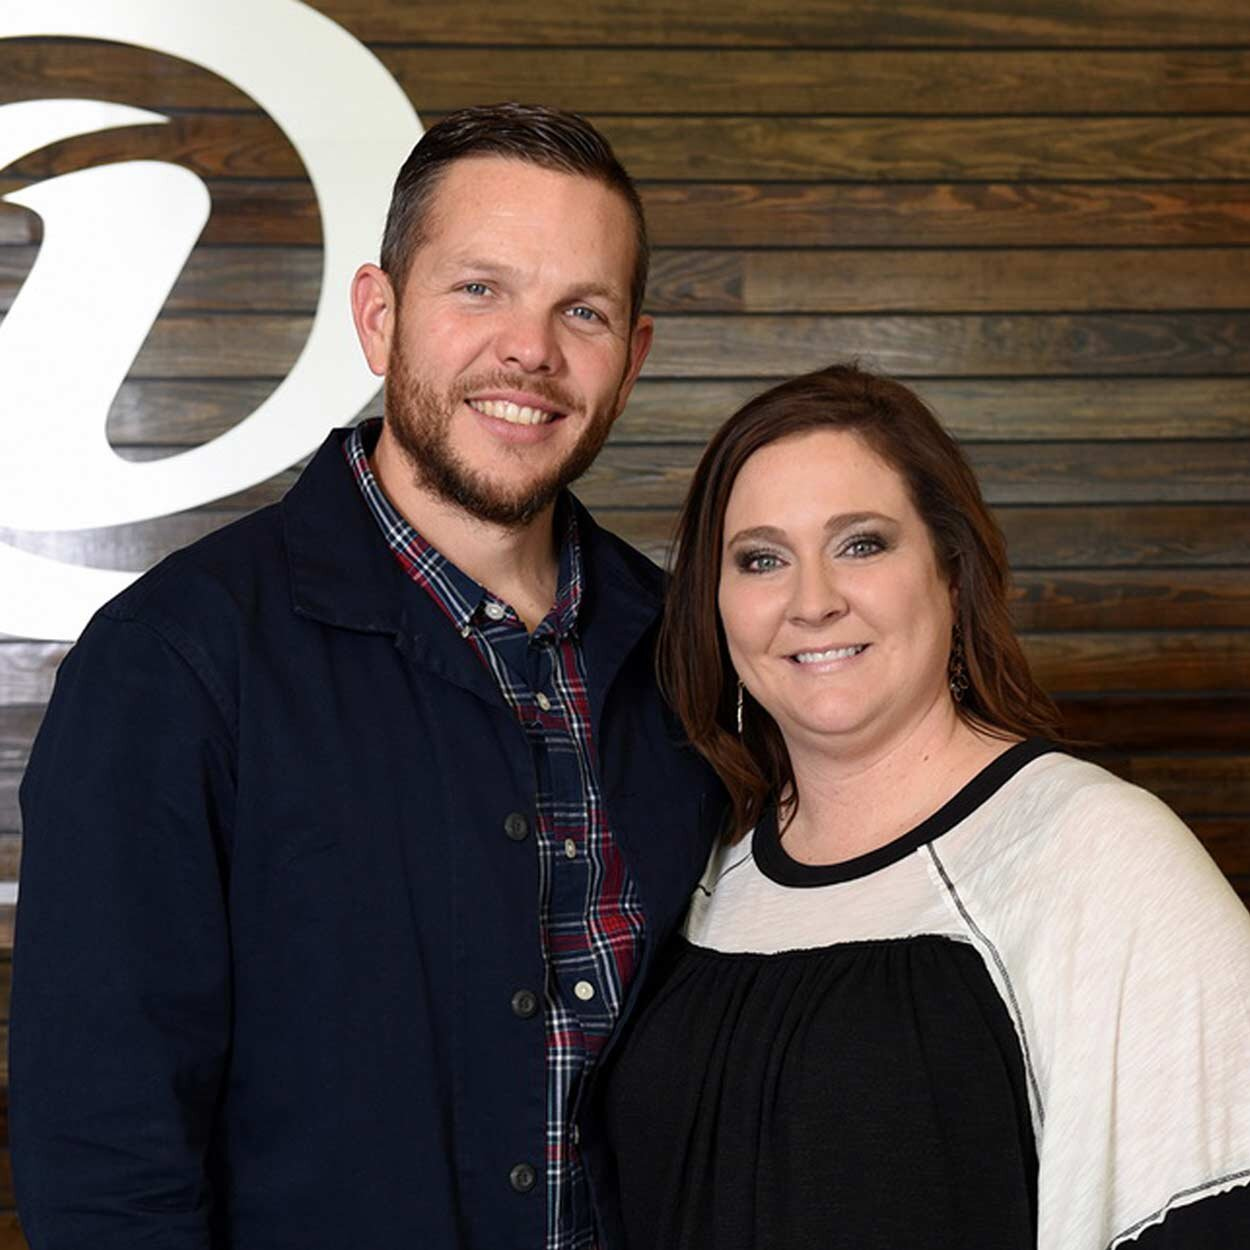 Pastor Jeremy & Jana Reid - ADMINISTRATIVE PASTORJeremy and his wife, Jana, have two daughters, Bailee and Lexee. He oversees our Leadership Team, Missions, Facilities, and Administration. He also serves as one of our Communicators and Teachers. He has served on our leadership team for seven years.Email Jeremy